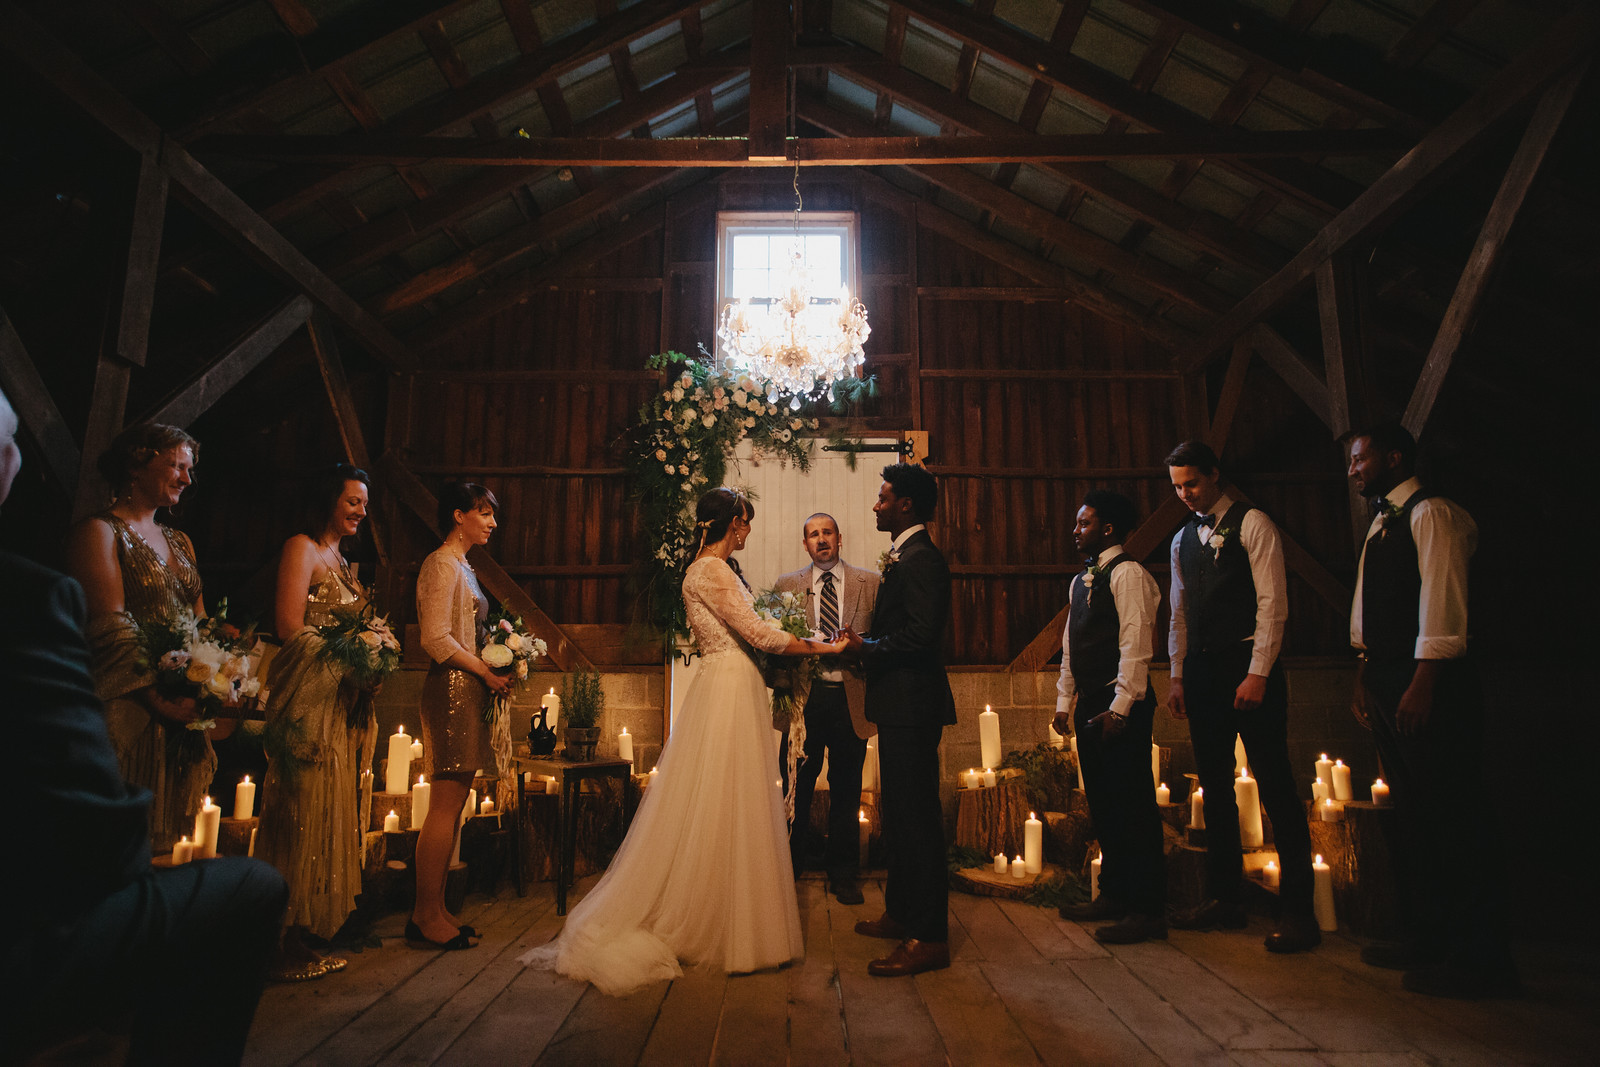 Winter barn wedding with candles, a floral arch, chandelier and the wedding party laughing